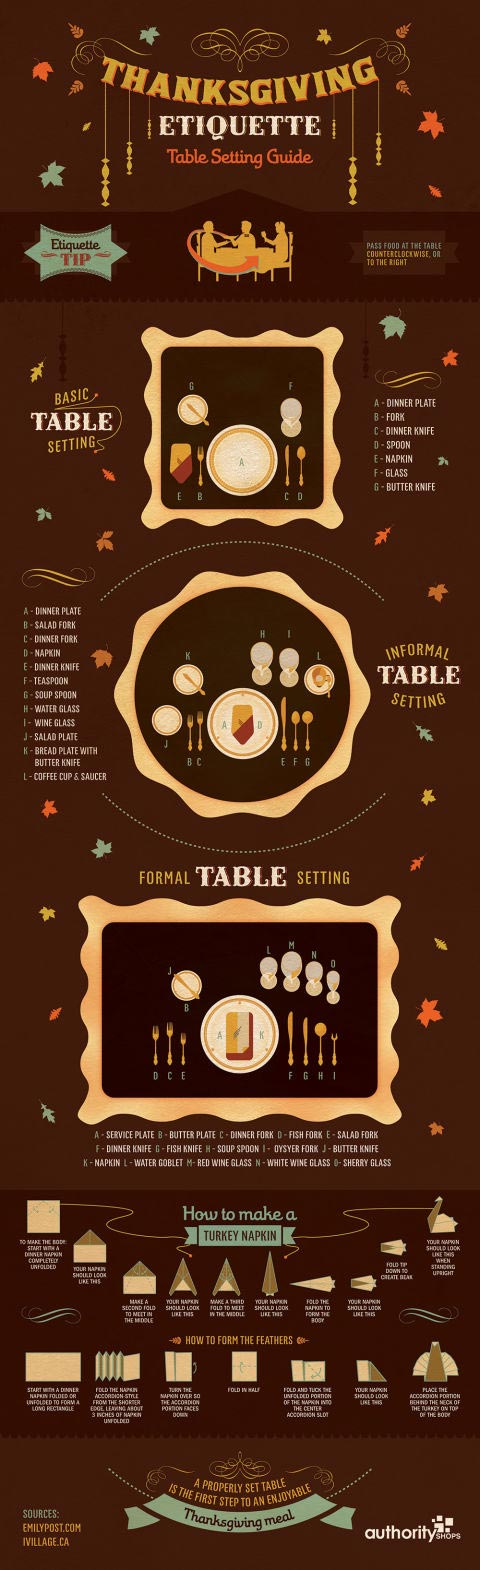 Thanksgiving table settting guide